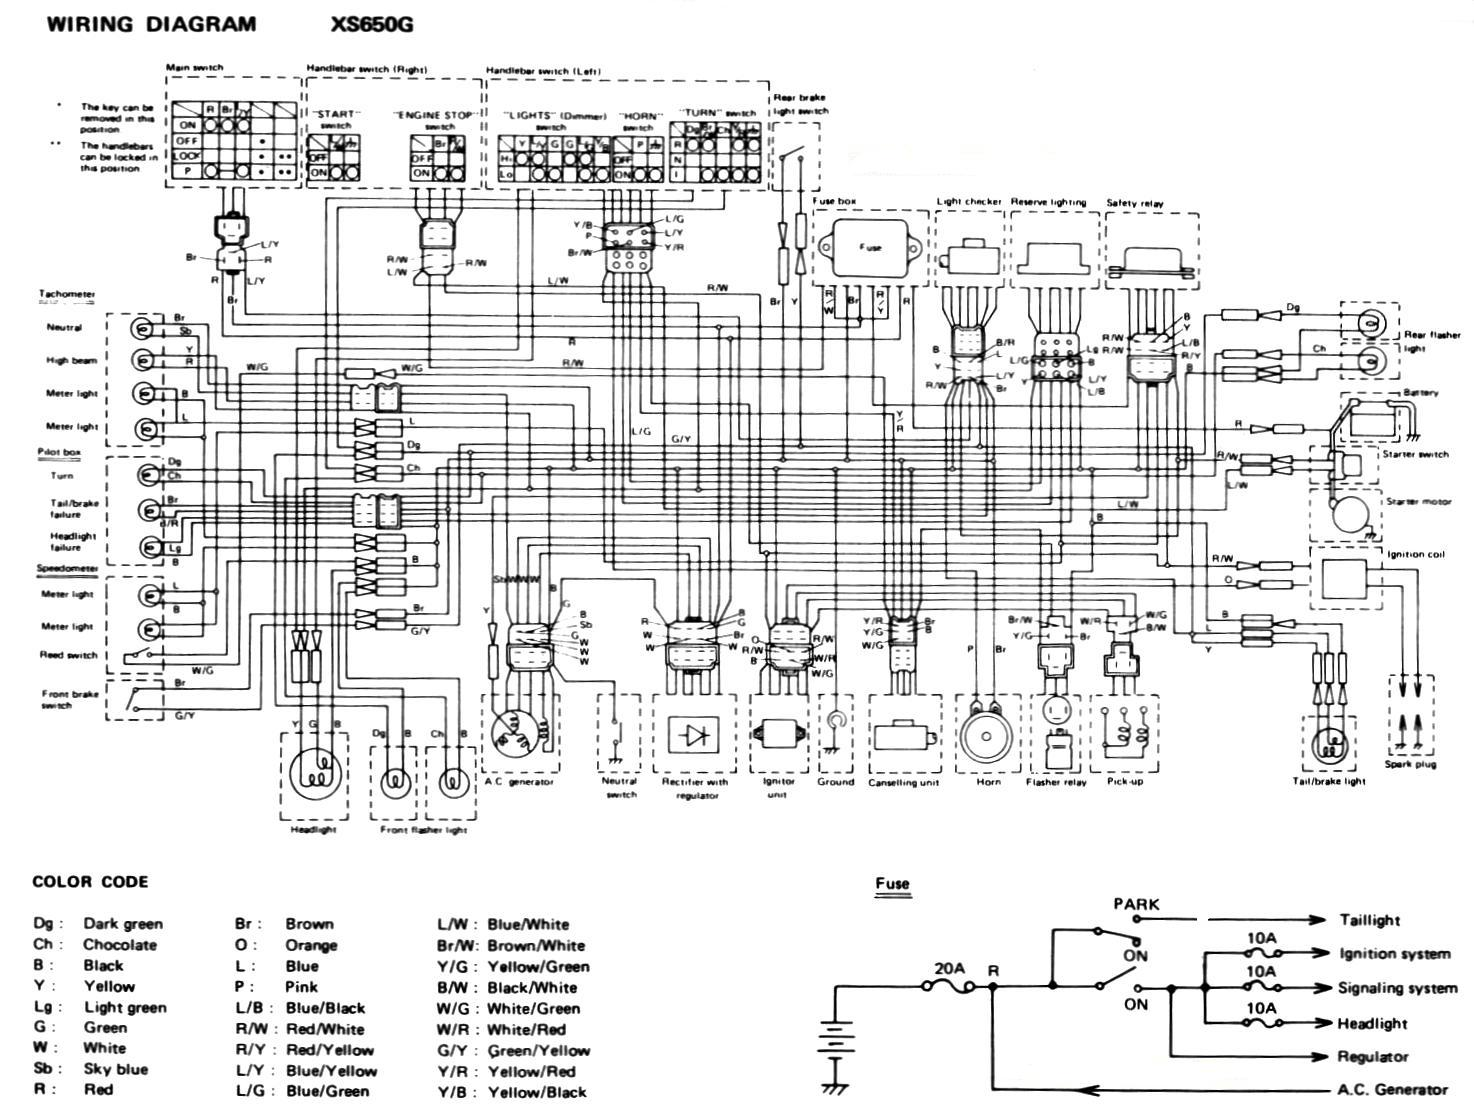 WRG-8370] 1981 Yamaha Xs650 Ignition Wiring Diagram on